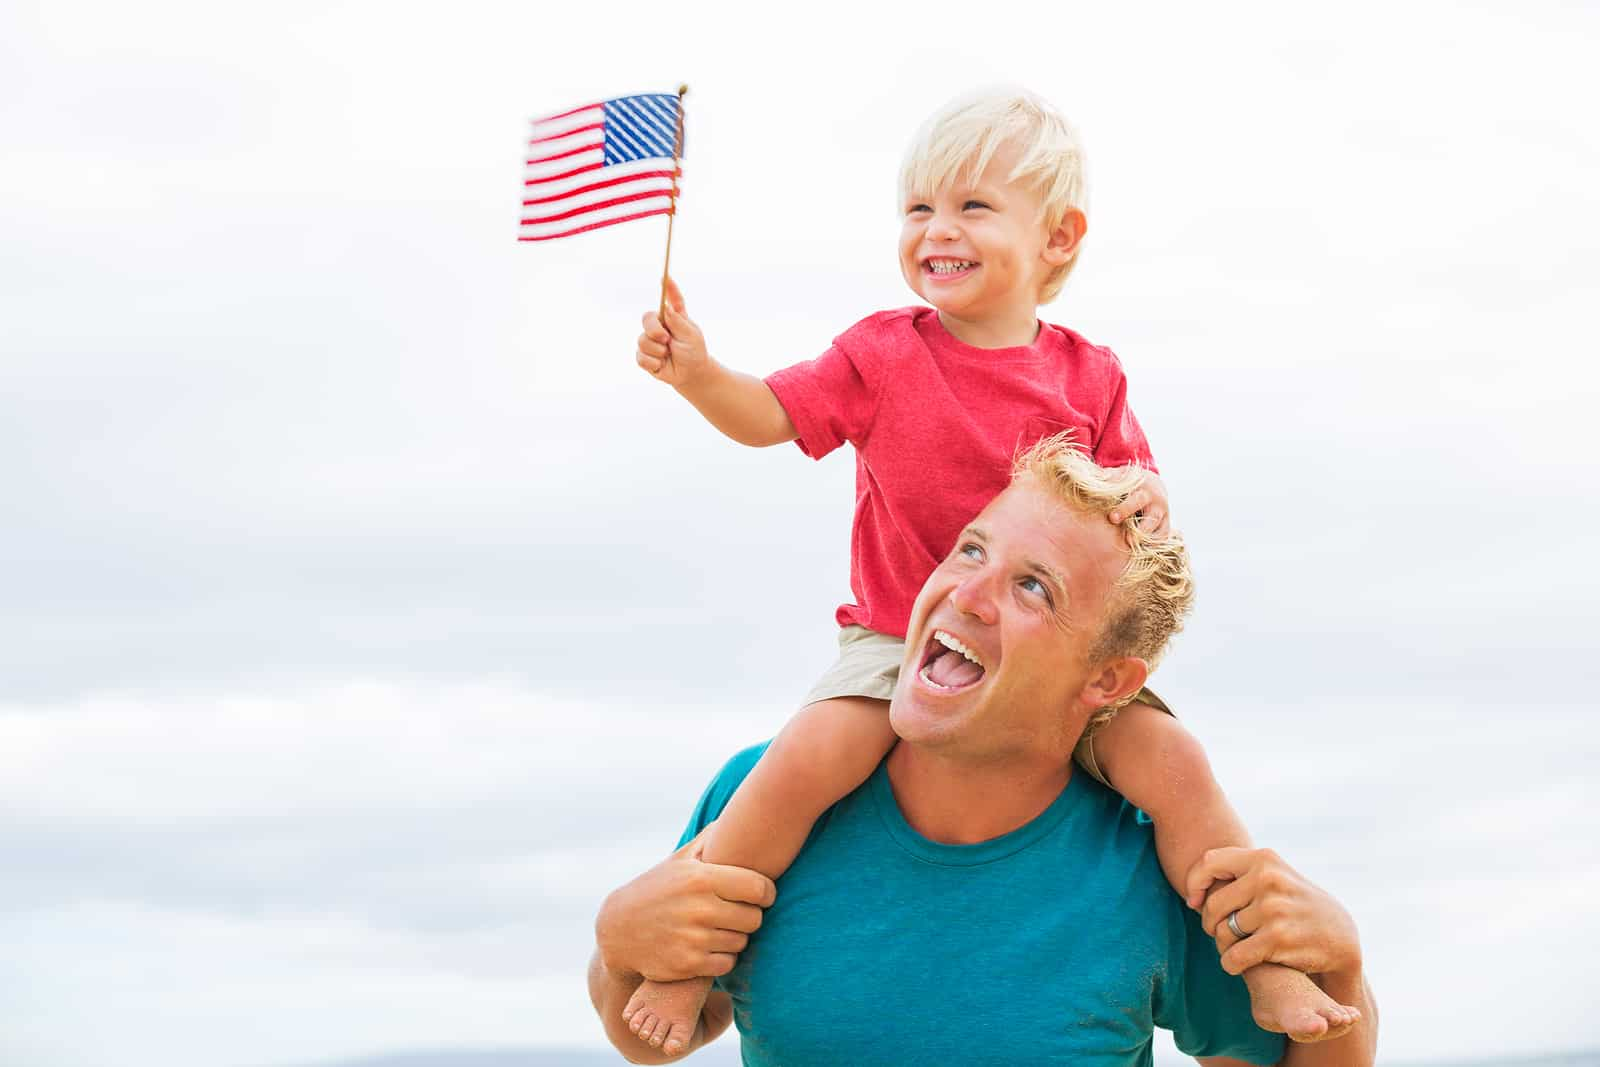 How to Teach Your Kids About the 4th of July